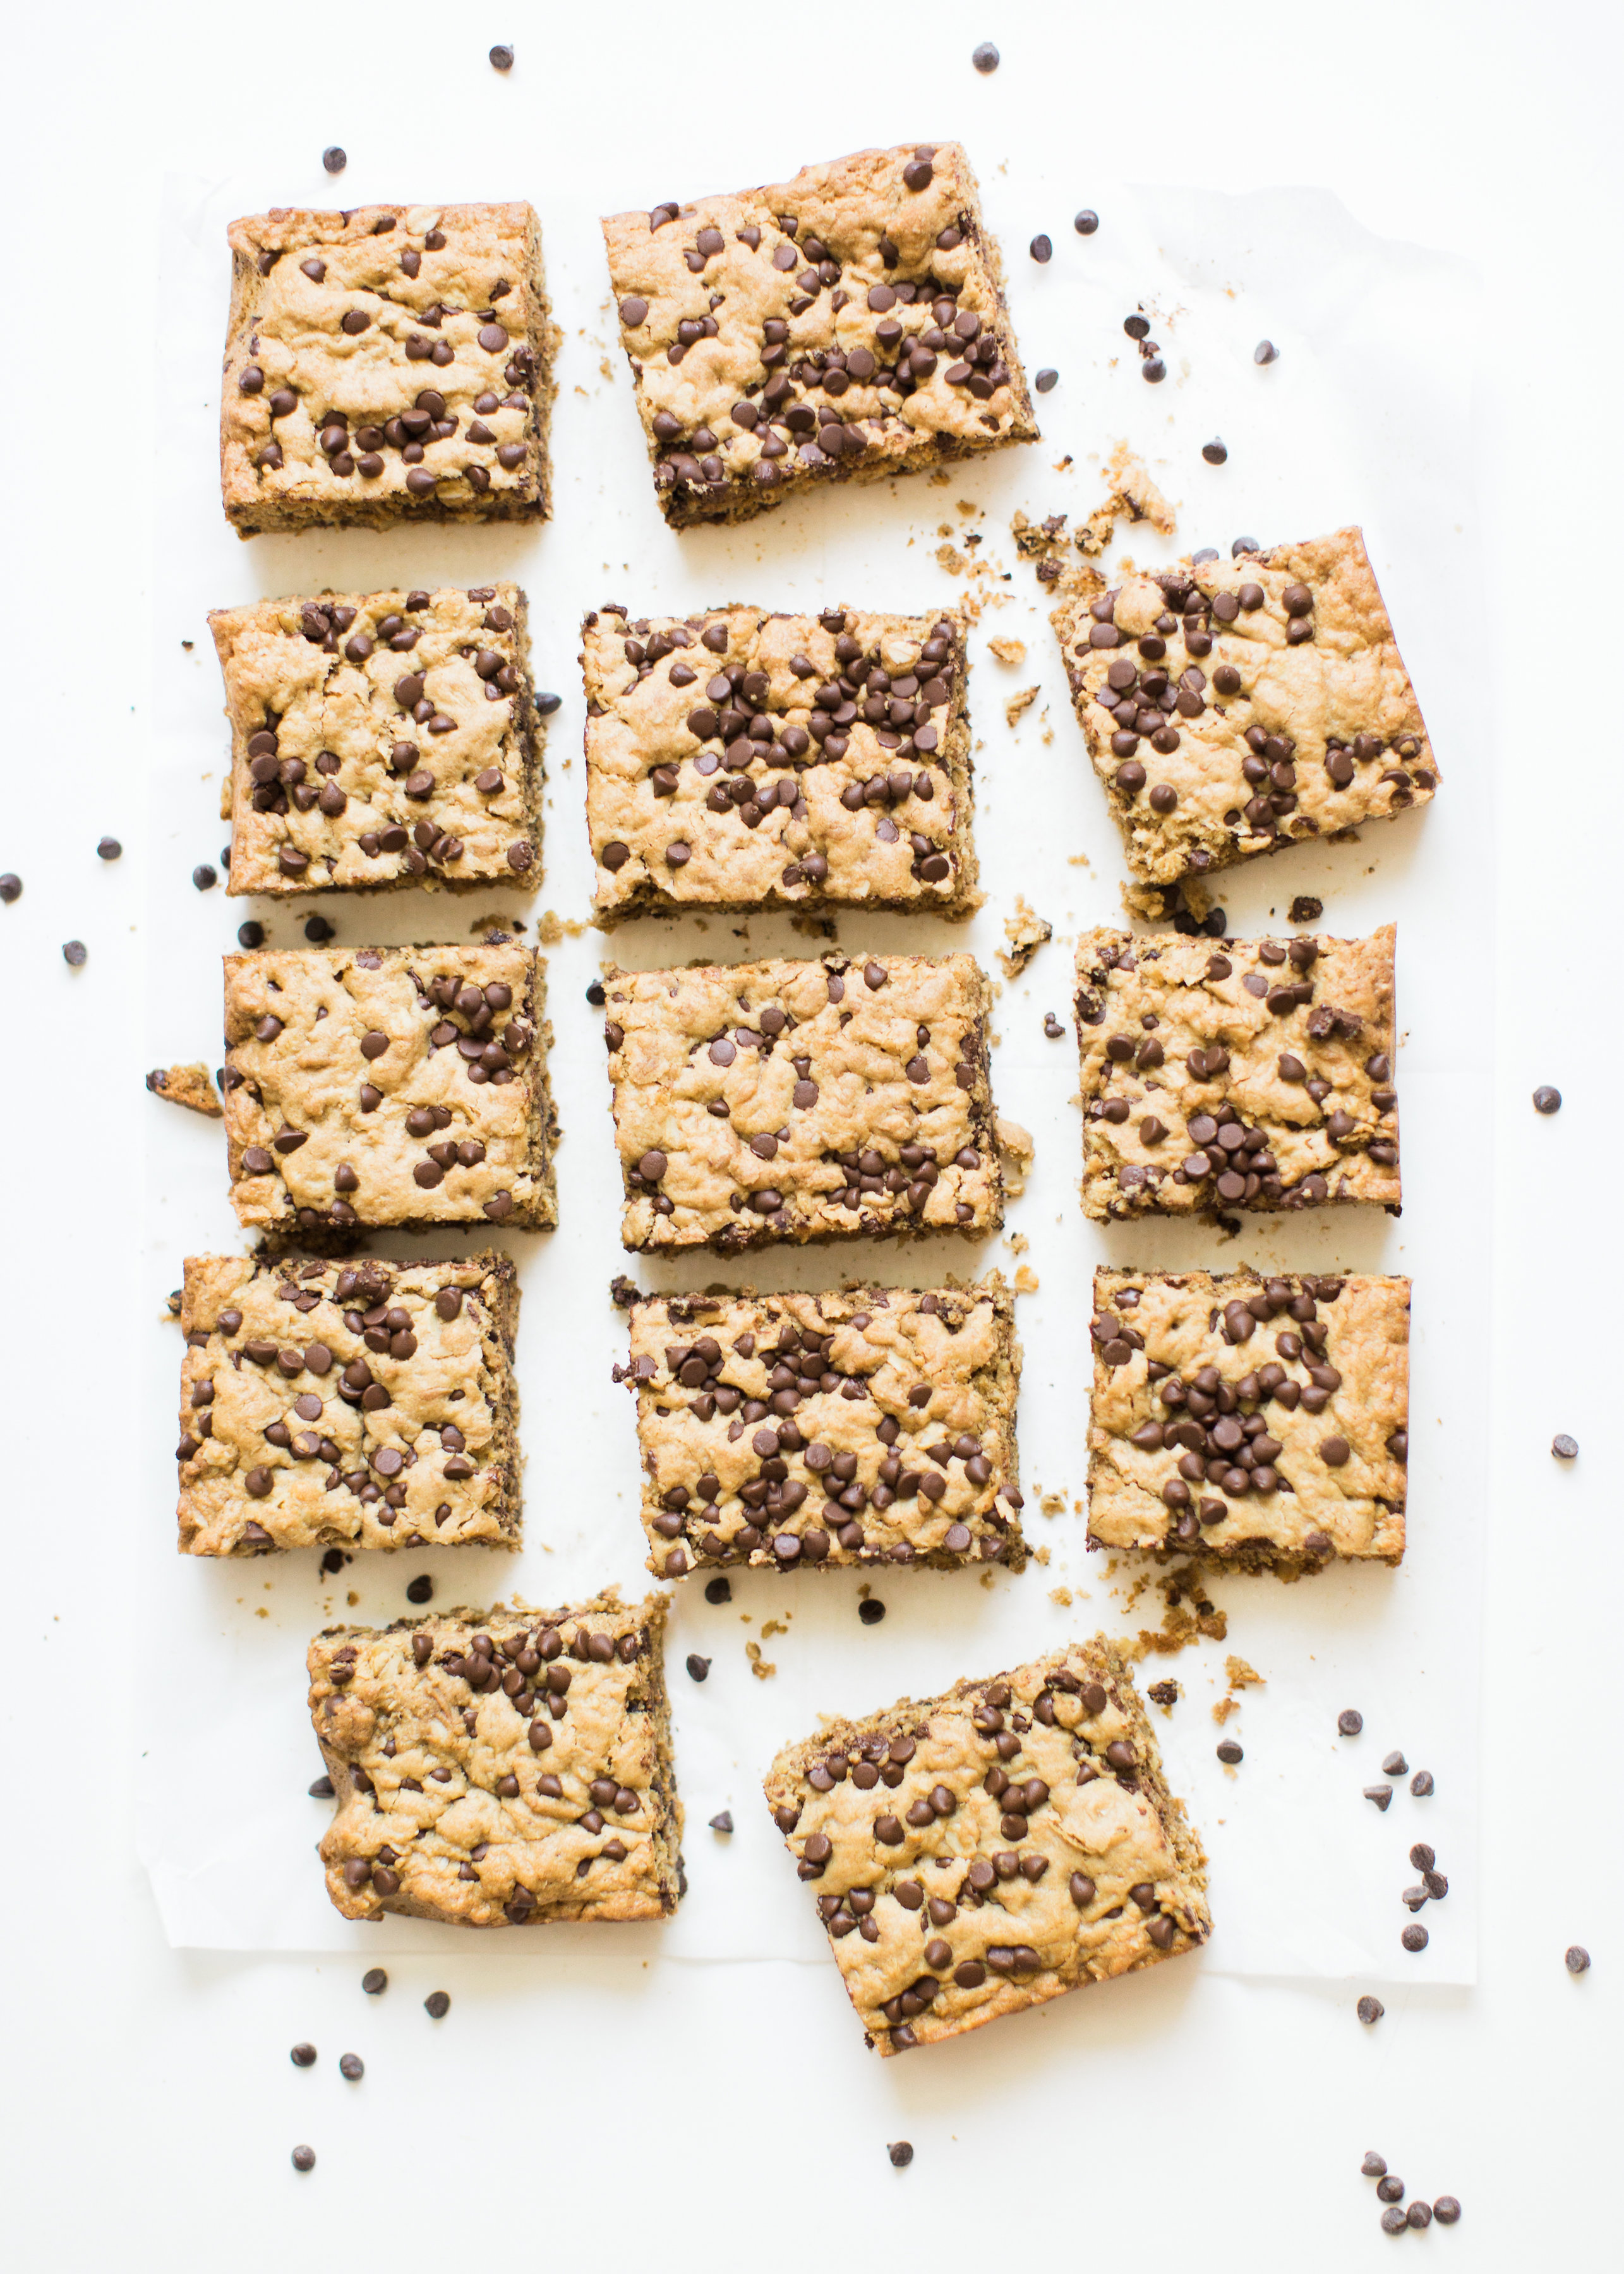 Delicious chocolate chip oatmeal cookies made extra simple by baking them up in a big batch of bars, these super moist chocolate chip oatmeal cookie bars are a favorite of our whole family, and for good reason! Click through for the #recipe. #oatmealcookies #oatmealcookiebars #cookiebars  #oatmealcookierecipe #dairyfree | glitterinc.com | @glitterinc